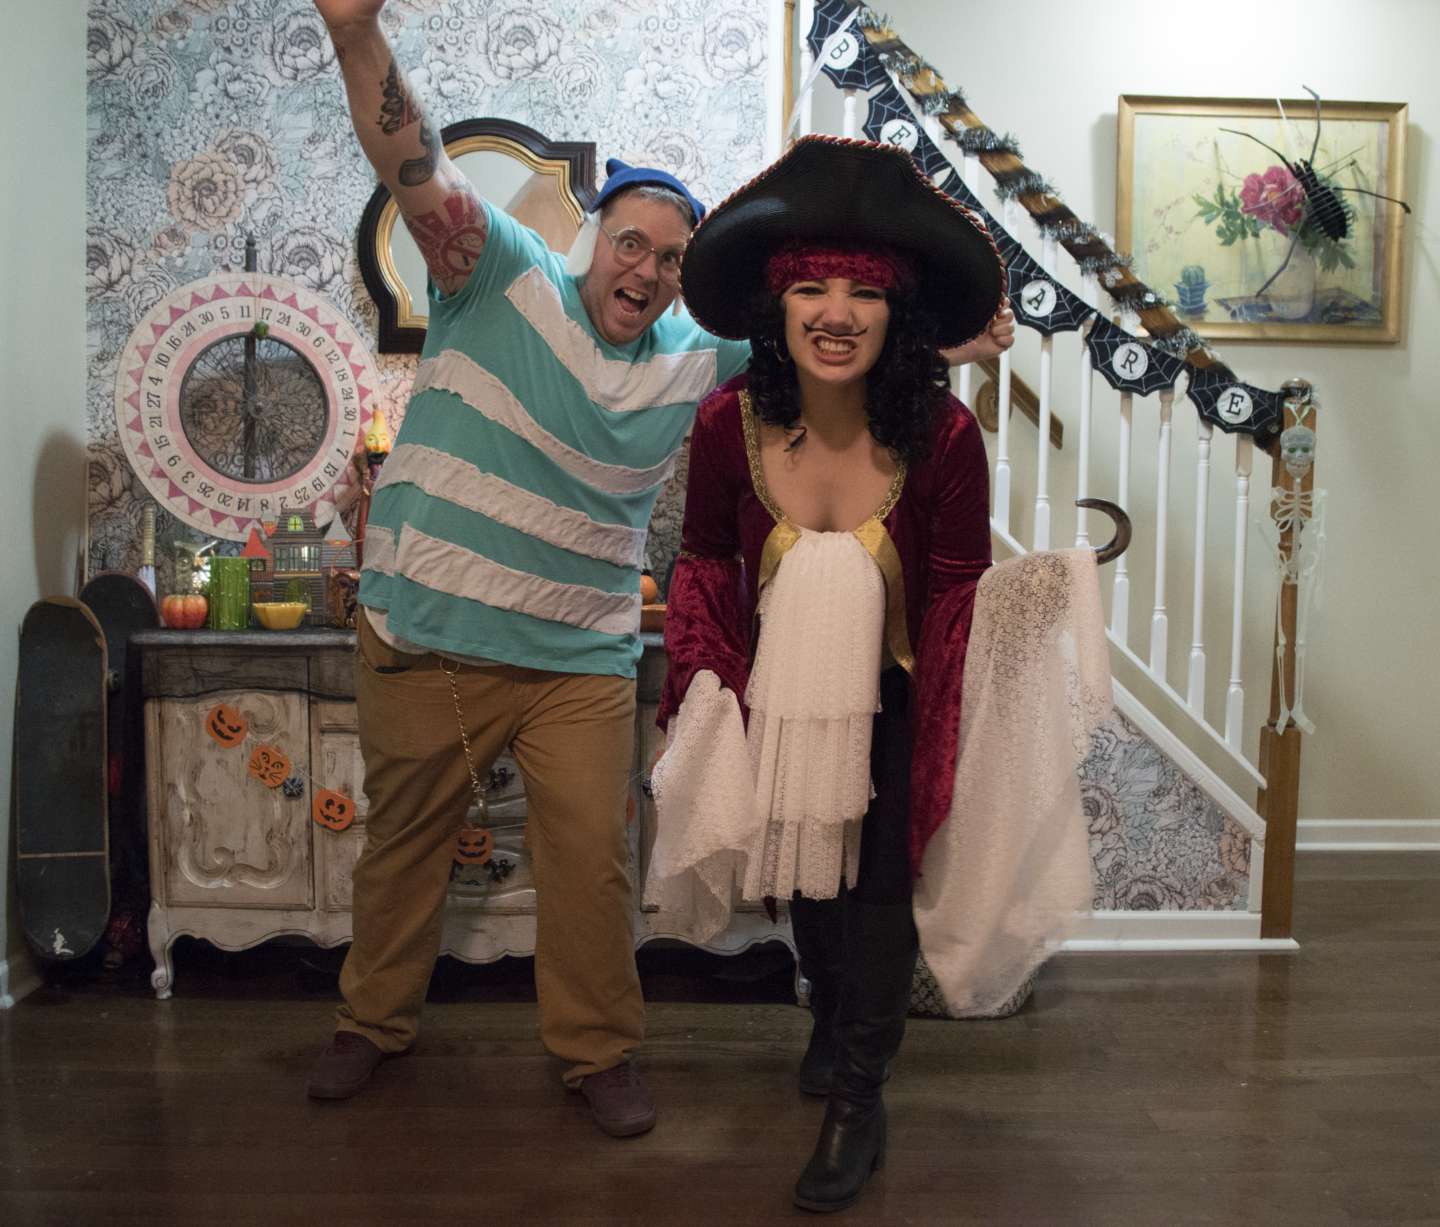 Happy Halloween from Captain Hook & Mr. Smee!